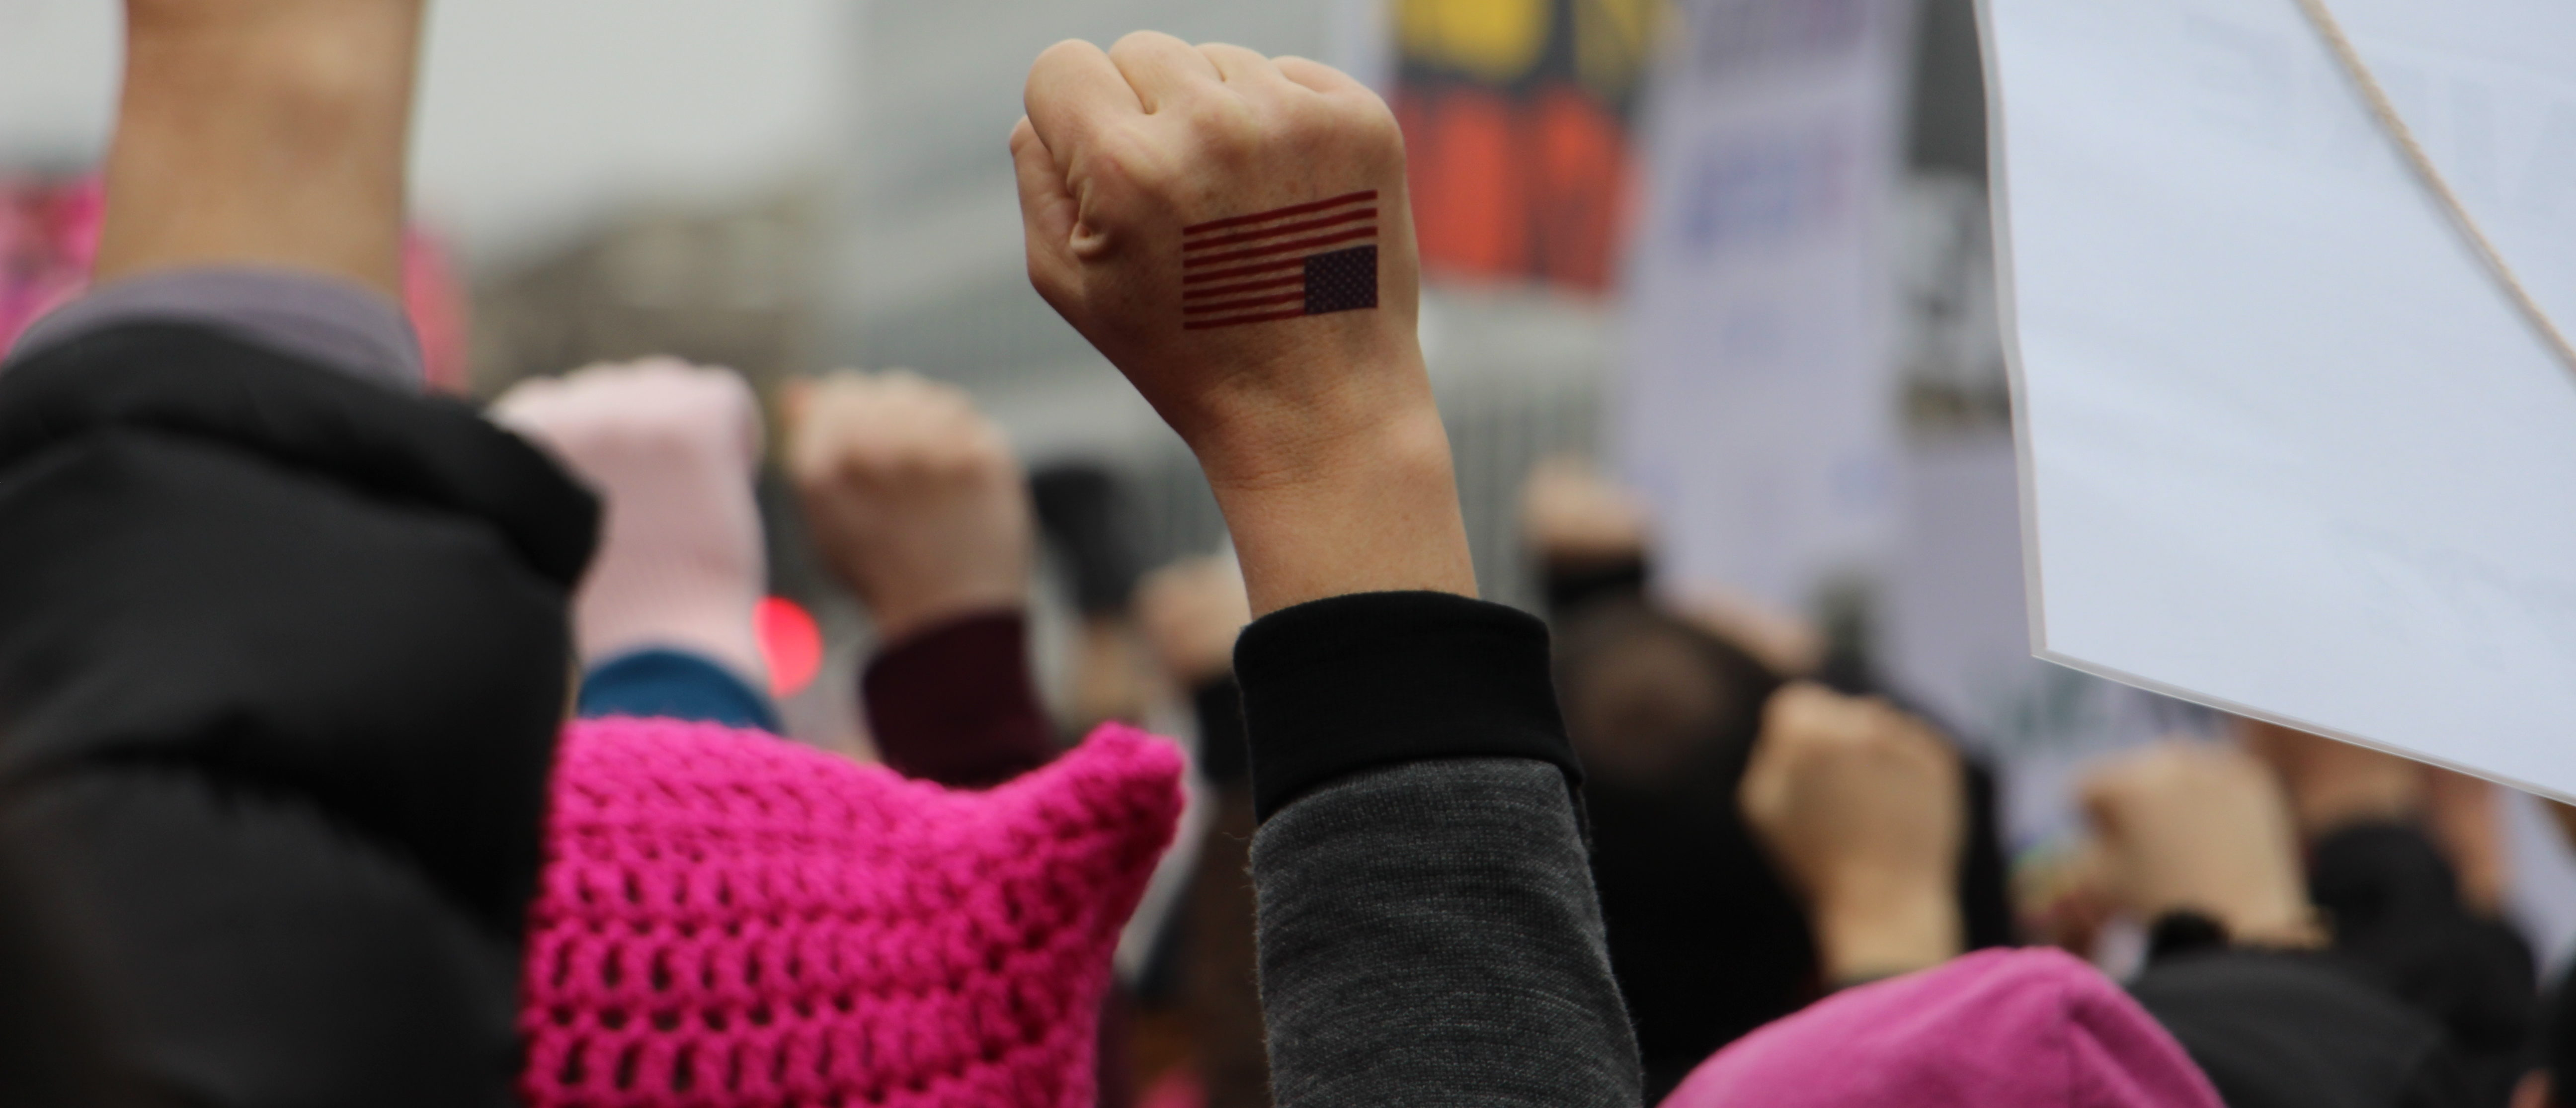 Woman's fist with US flag raised in the air at Women's March in Washington DC. (Shutterstock)